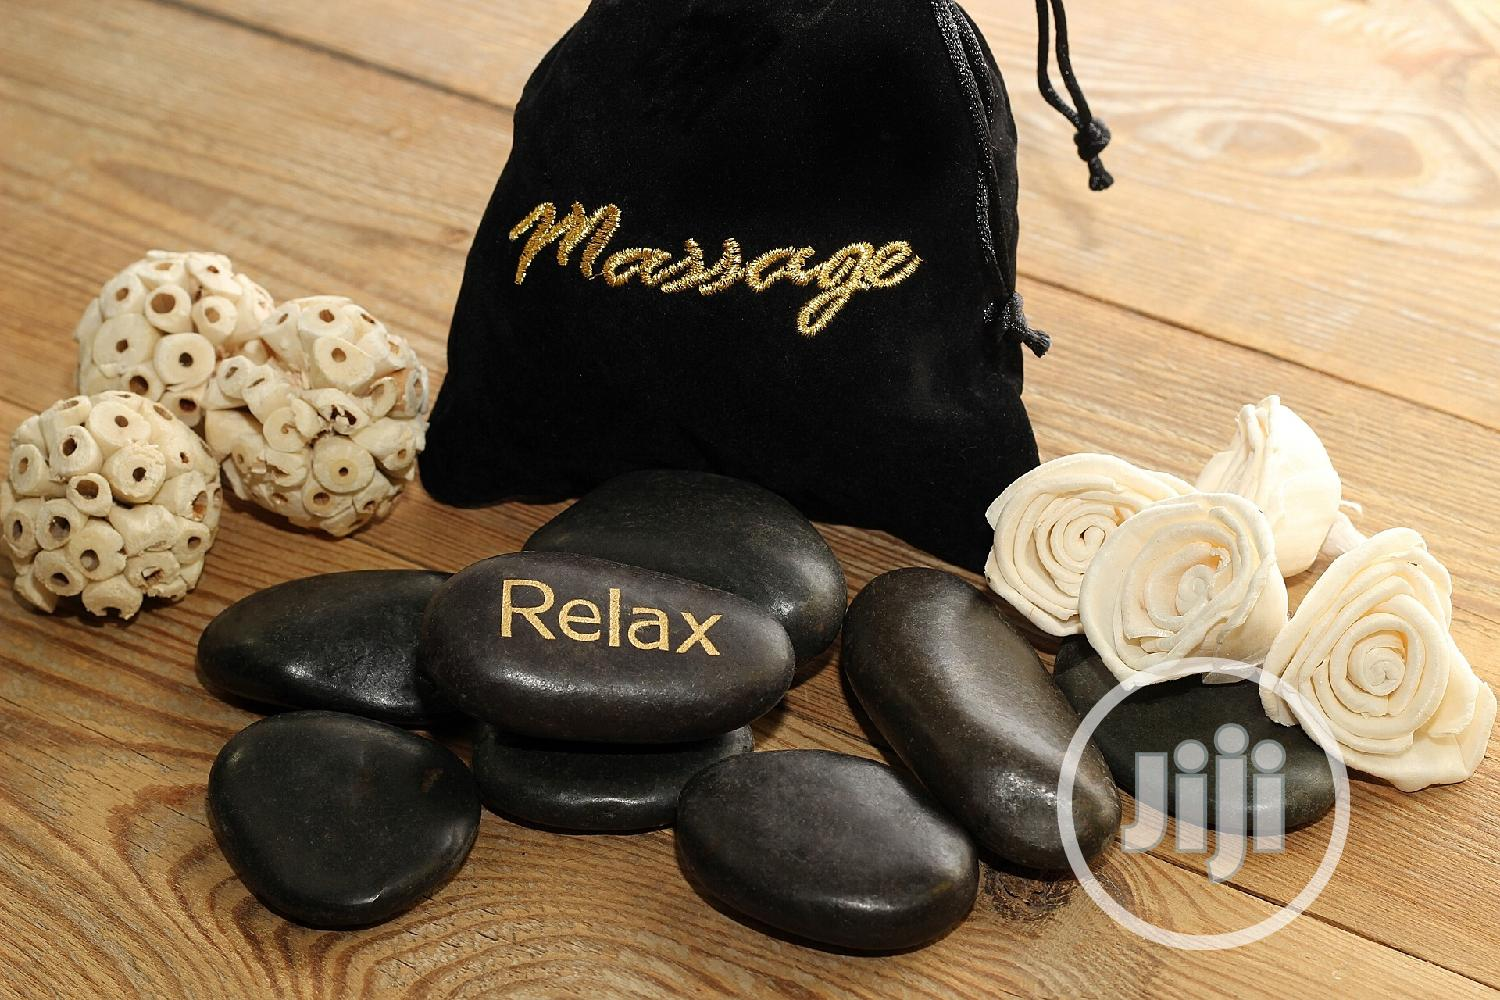 Massage Therapist - Home Service | Health & Beauty Services for sale in Jos, Plateau State, Nigeria